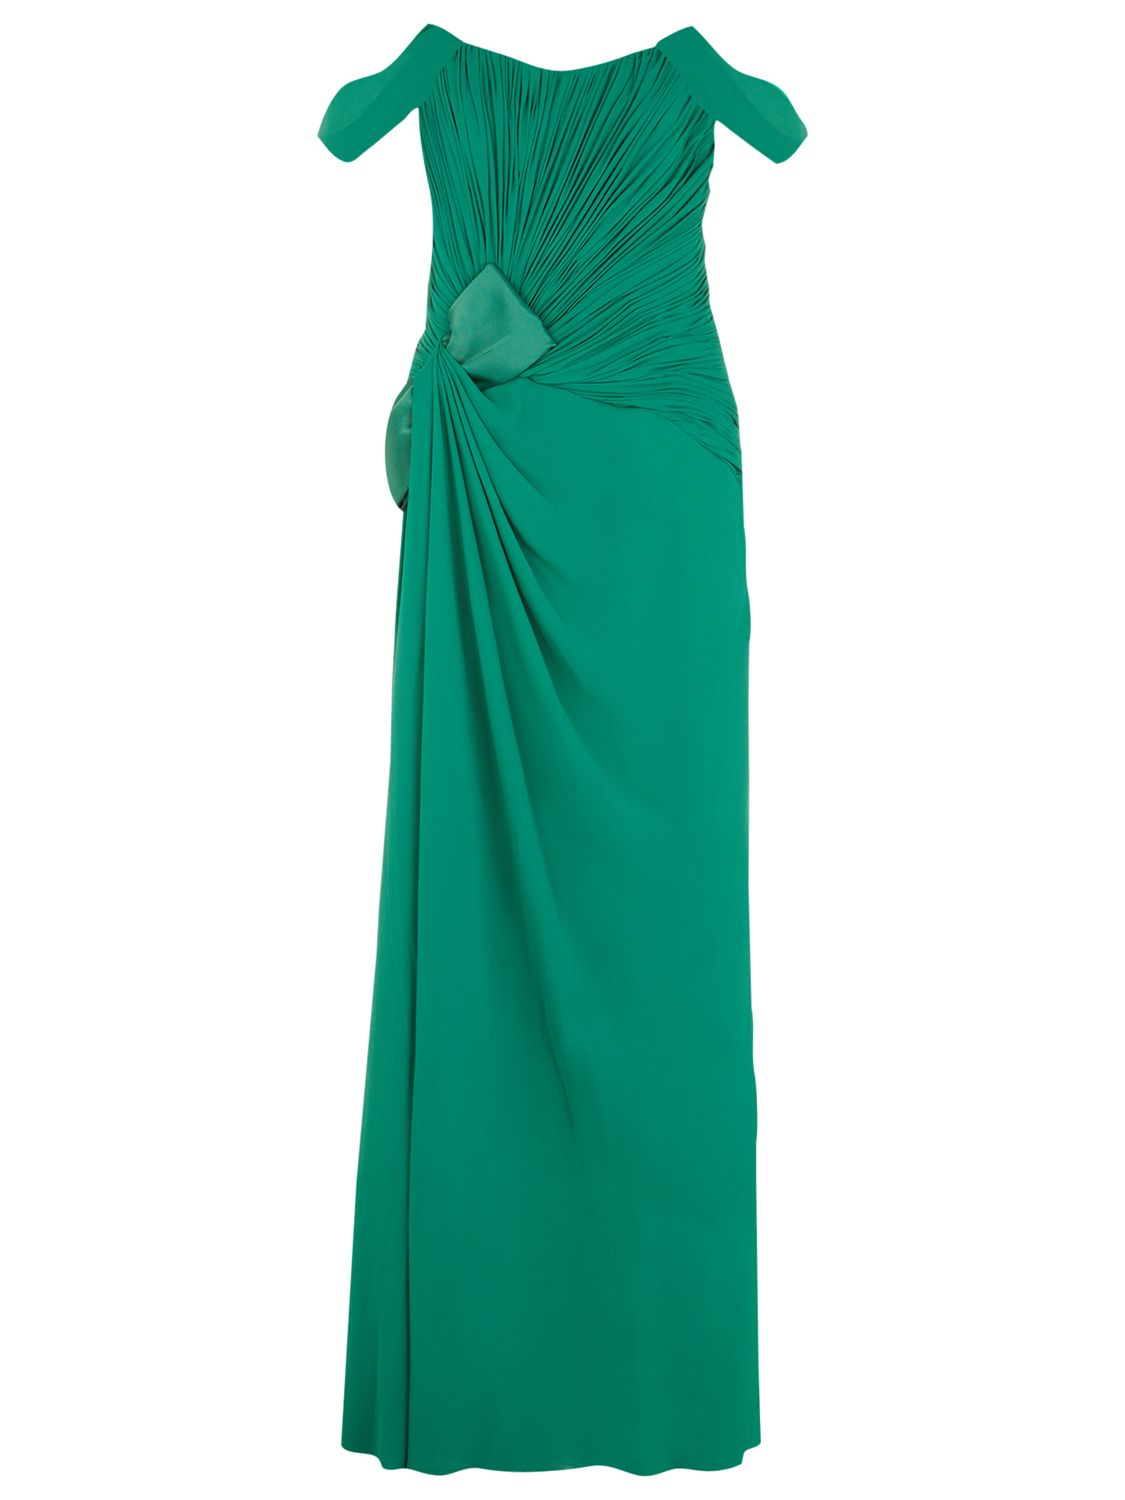 jacques vert bow detail gown emerald, jacques, vert, bow, detail, gown, emerald, jacques vert, 20|12|14|10, clearance, womenswear offers, womens dresses offers, women, eveningwear, special offers, inactive womenswear, new reductions, womens dresses, aw14 trends, pillar box, 1691726